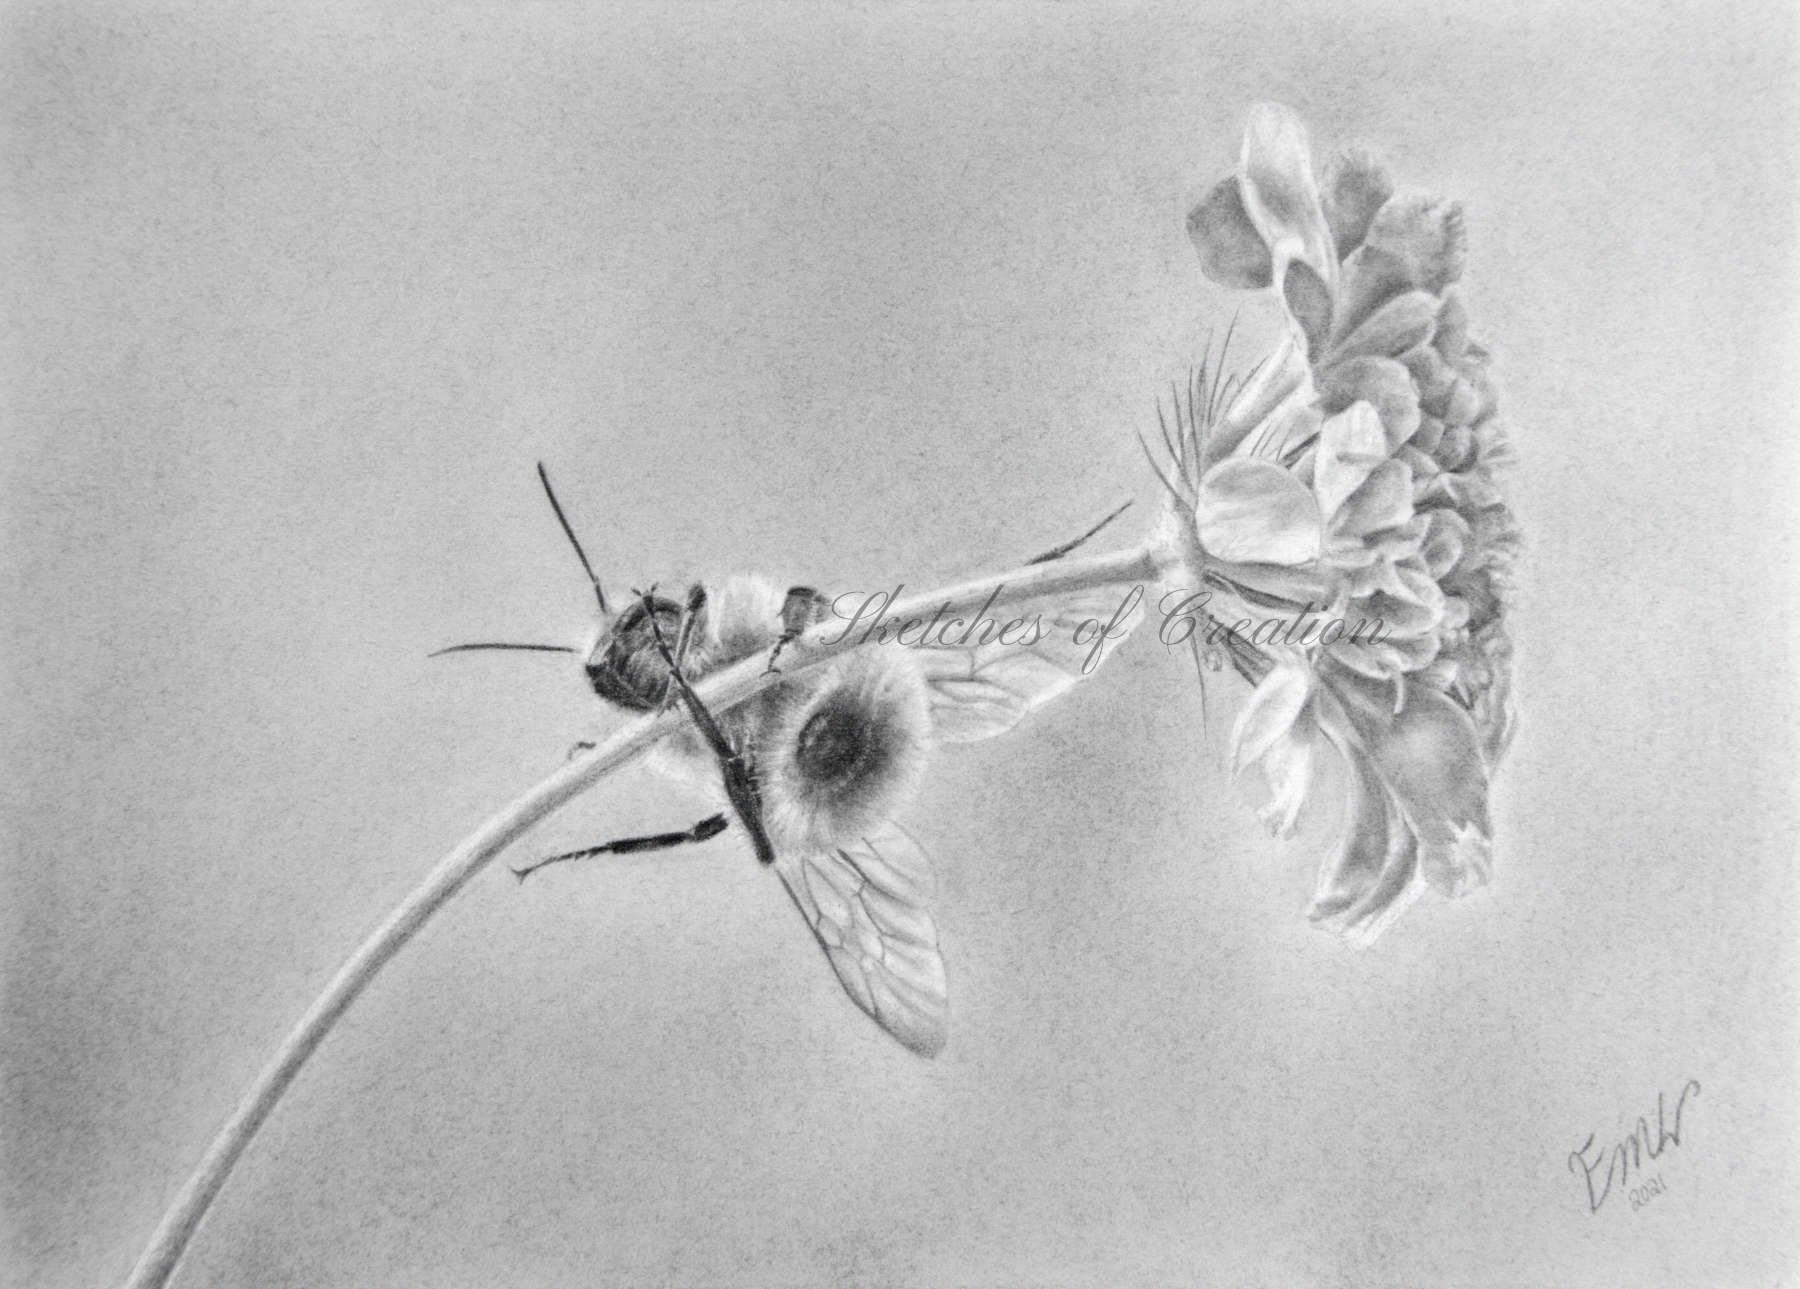 'Hang On!' a drawing of a Bumble bee climbing on a flower stem. Completed July 2021